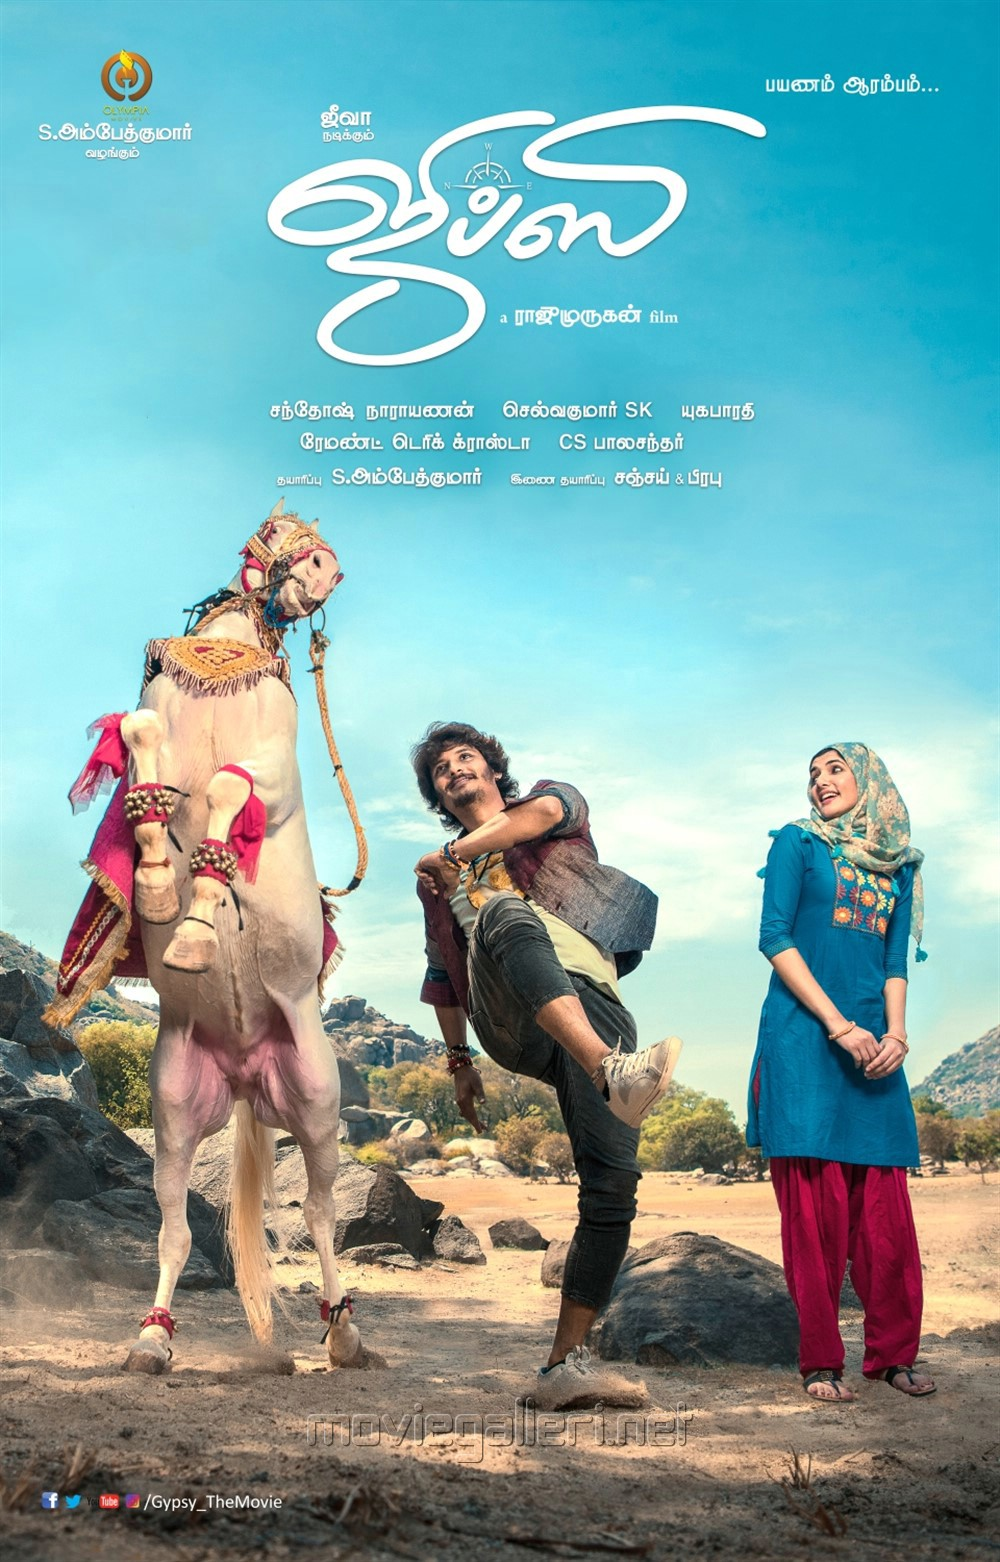 Gypsy First Look and Posters